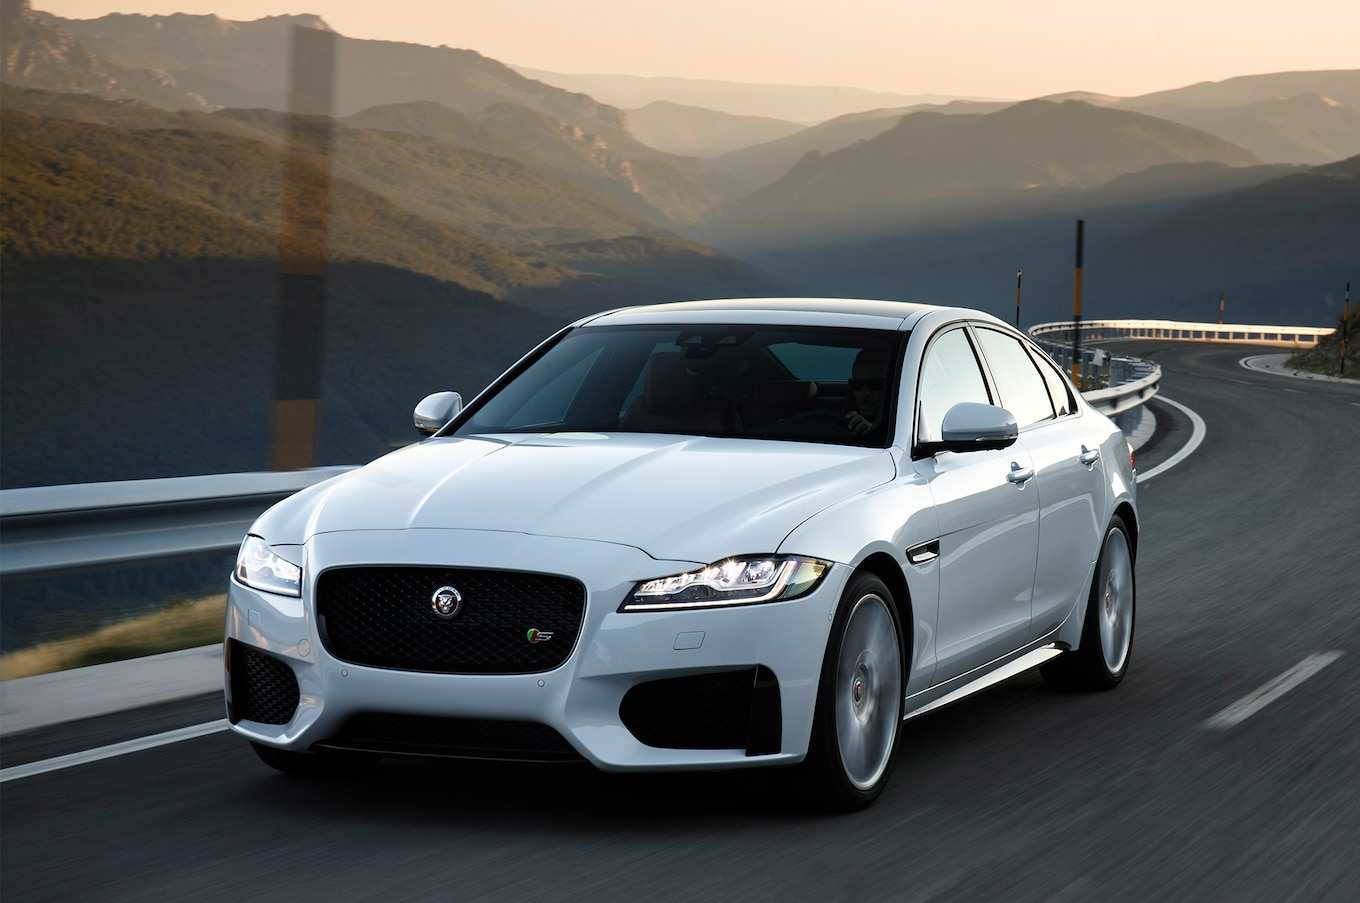 87 The Best Jaguar Car 2019 Wallpaper